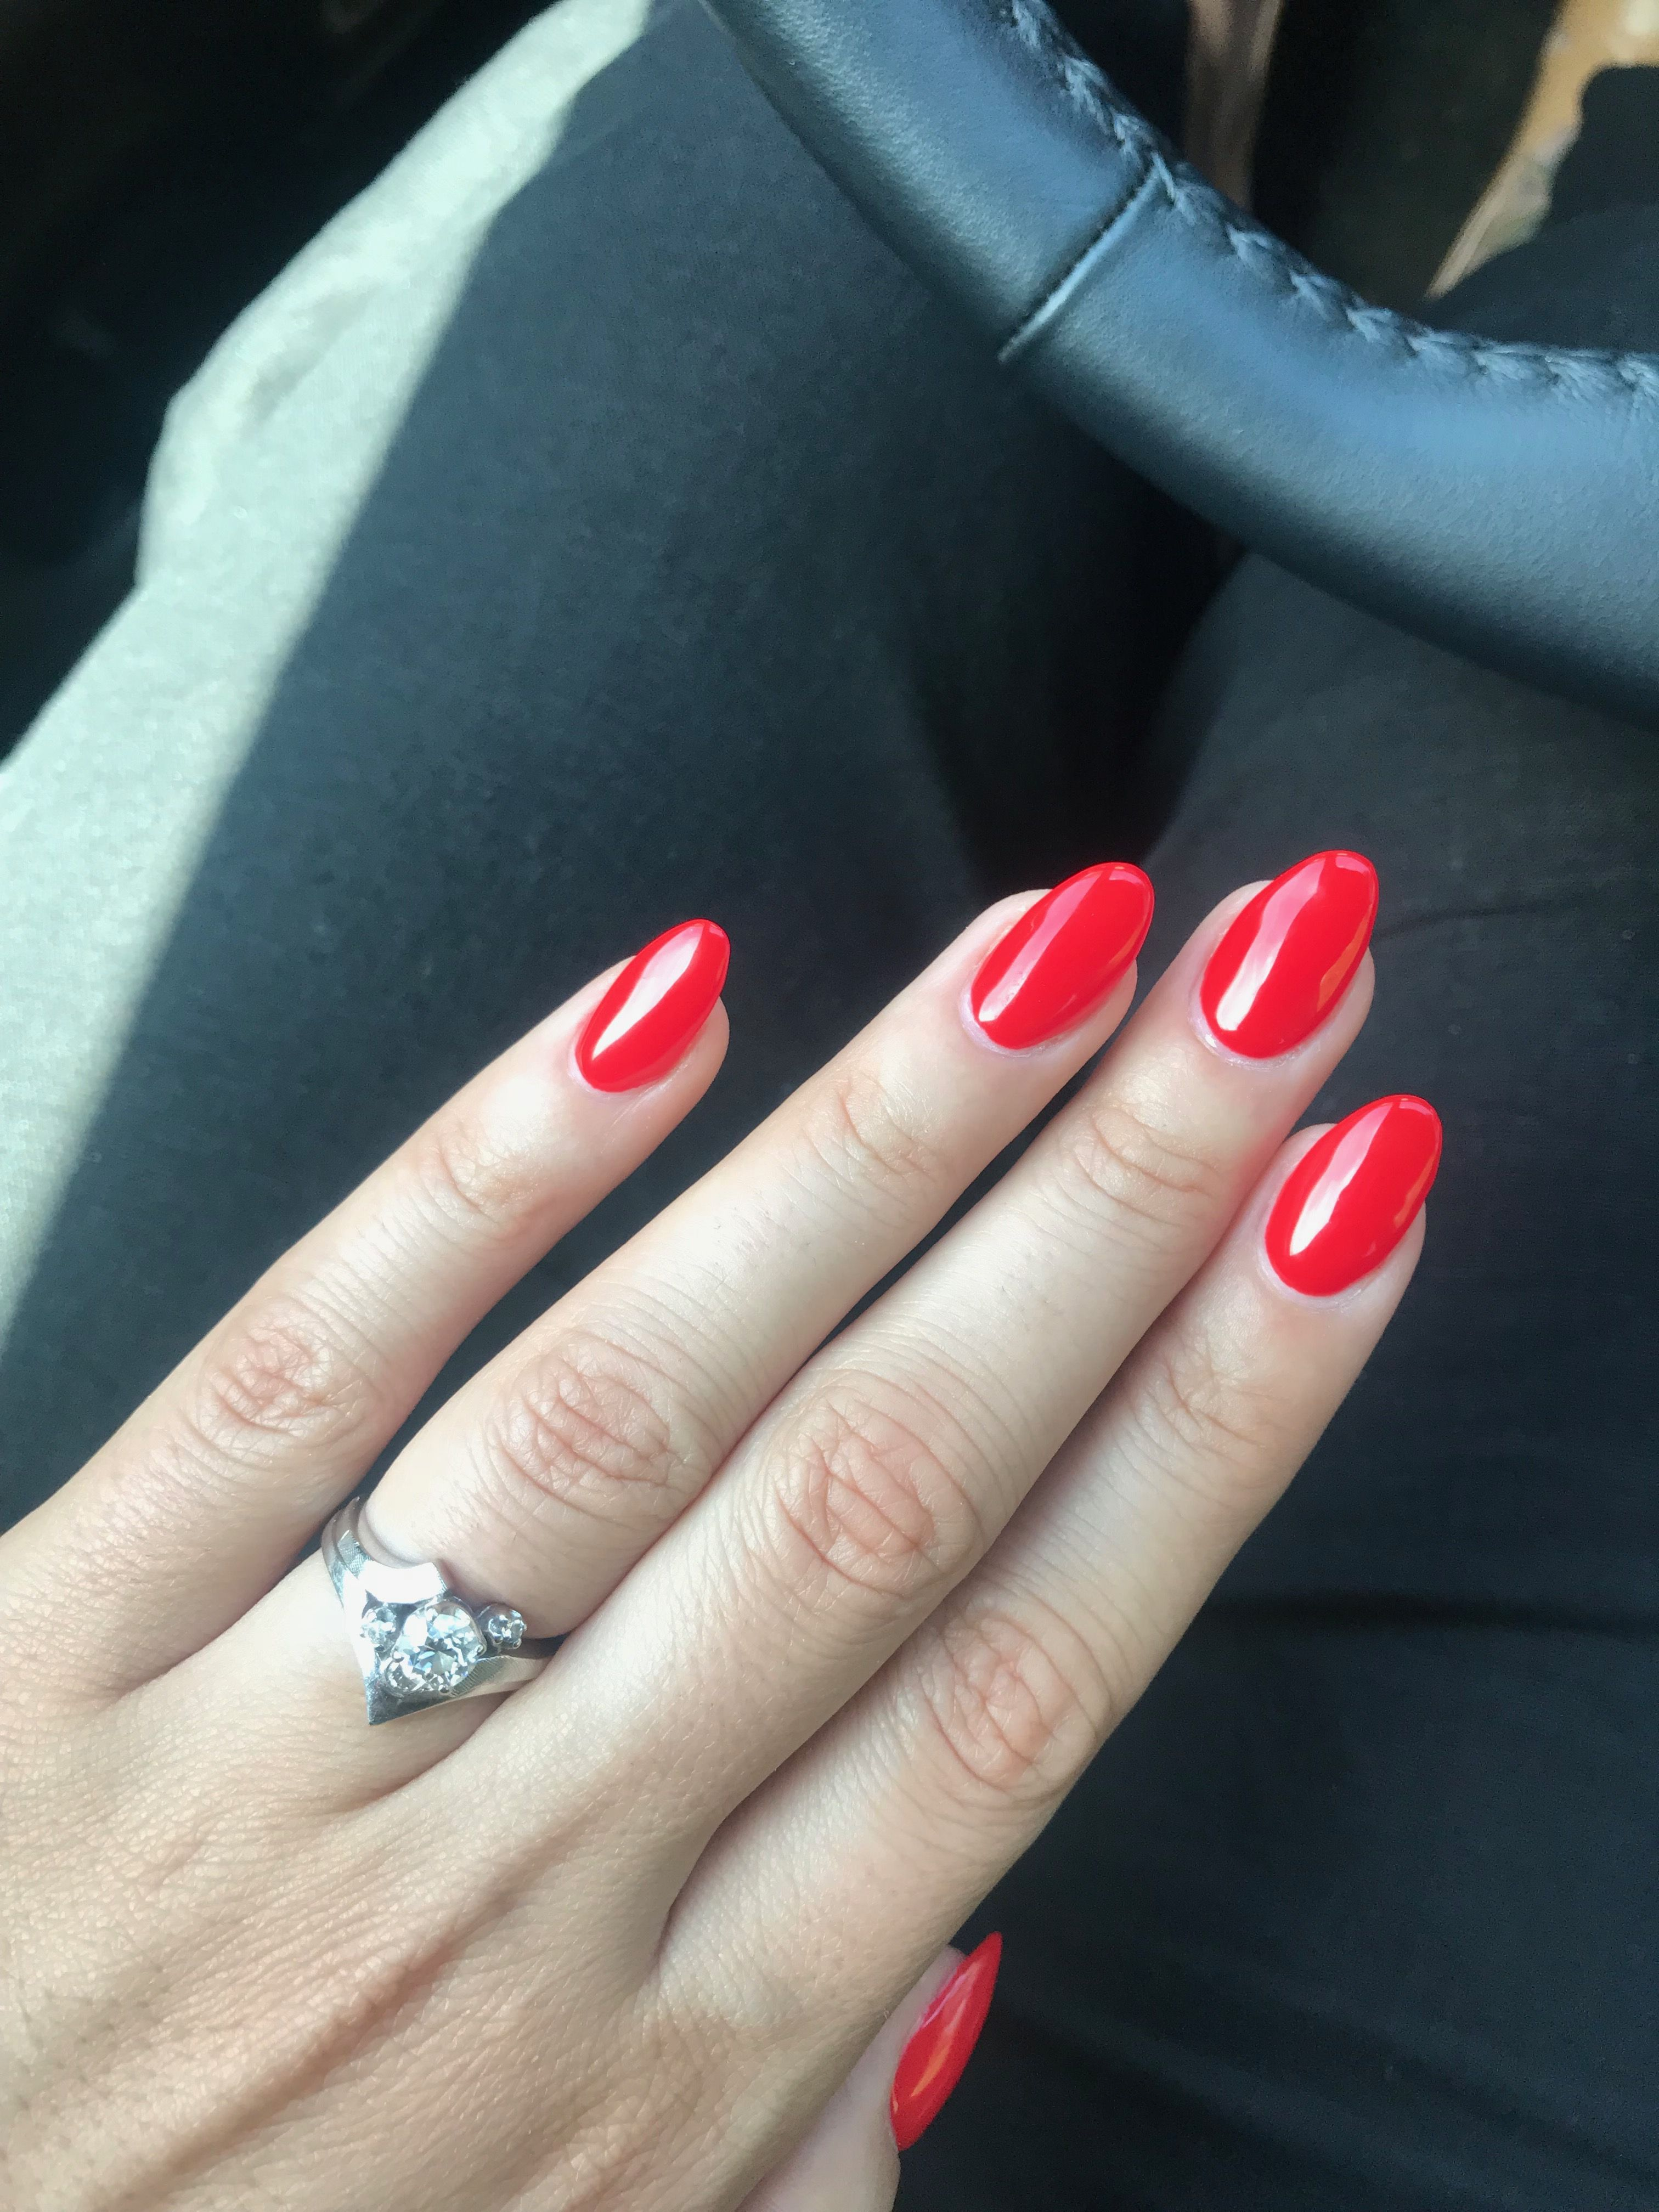 Ferrari Red Almond Round Acrylic Bright Red Short Nails Red Shellac Nails Bright Red Nails Almond Nails Red